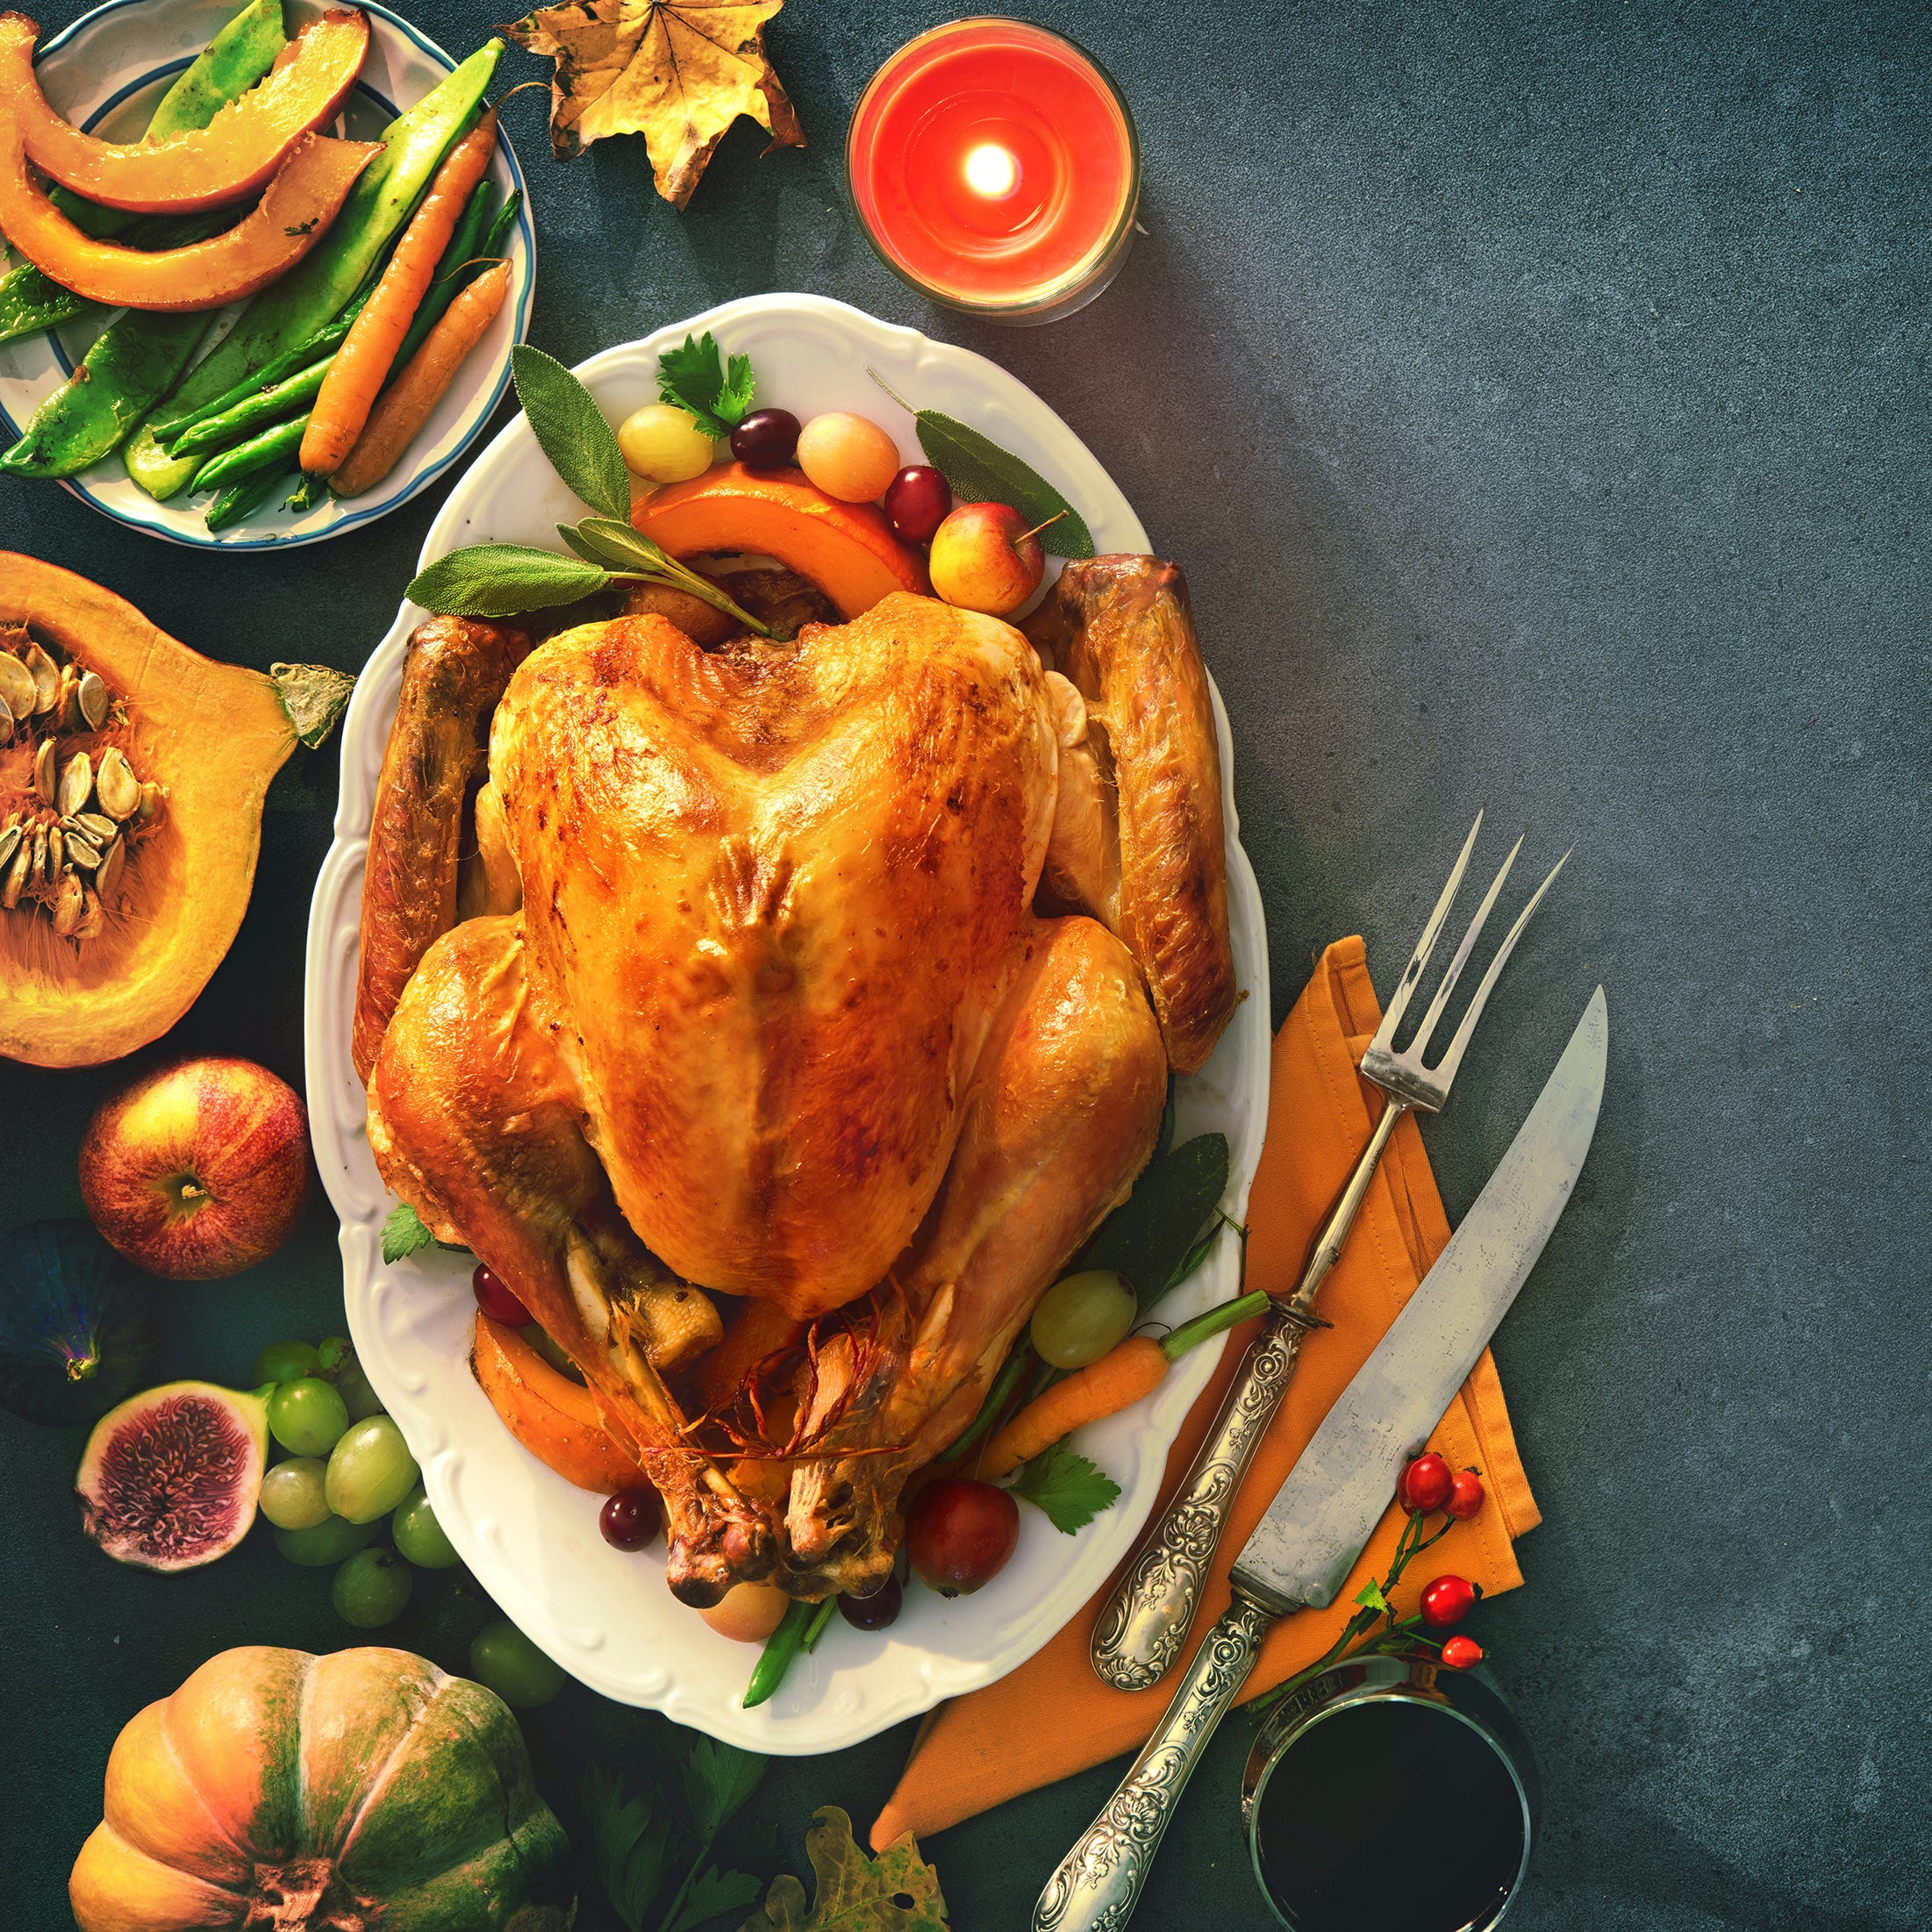 Halloween is over so let's talk Thanksgiving and what's going to be on the table